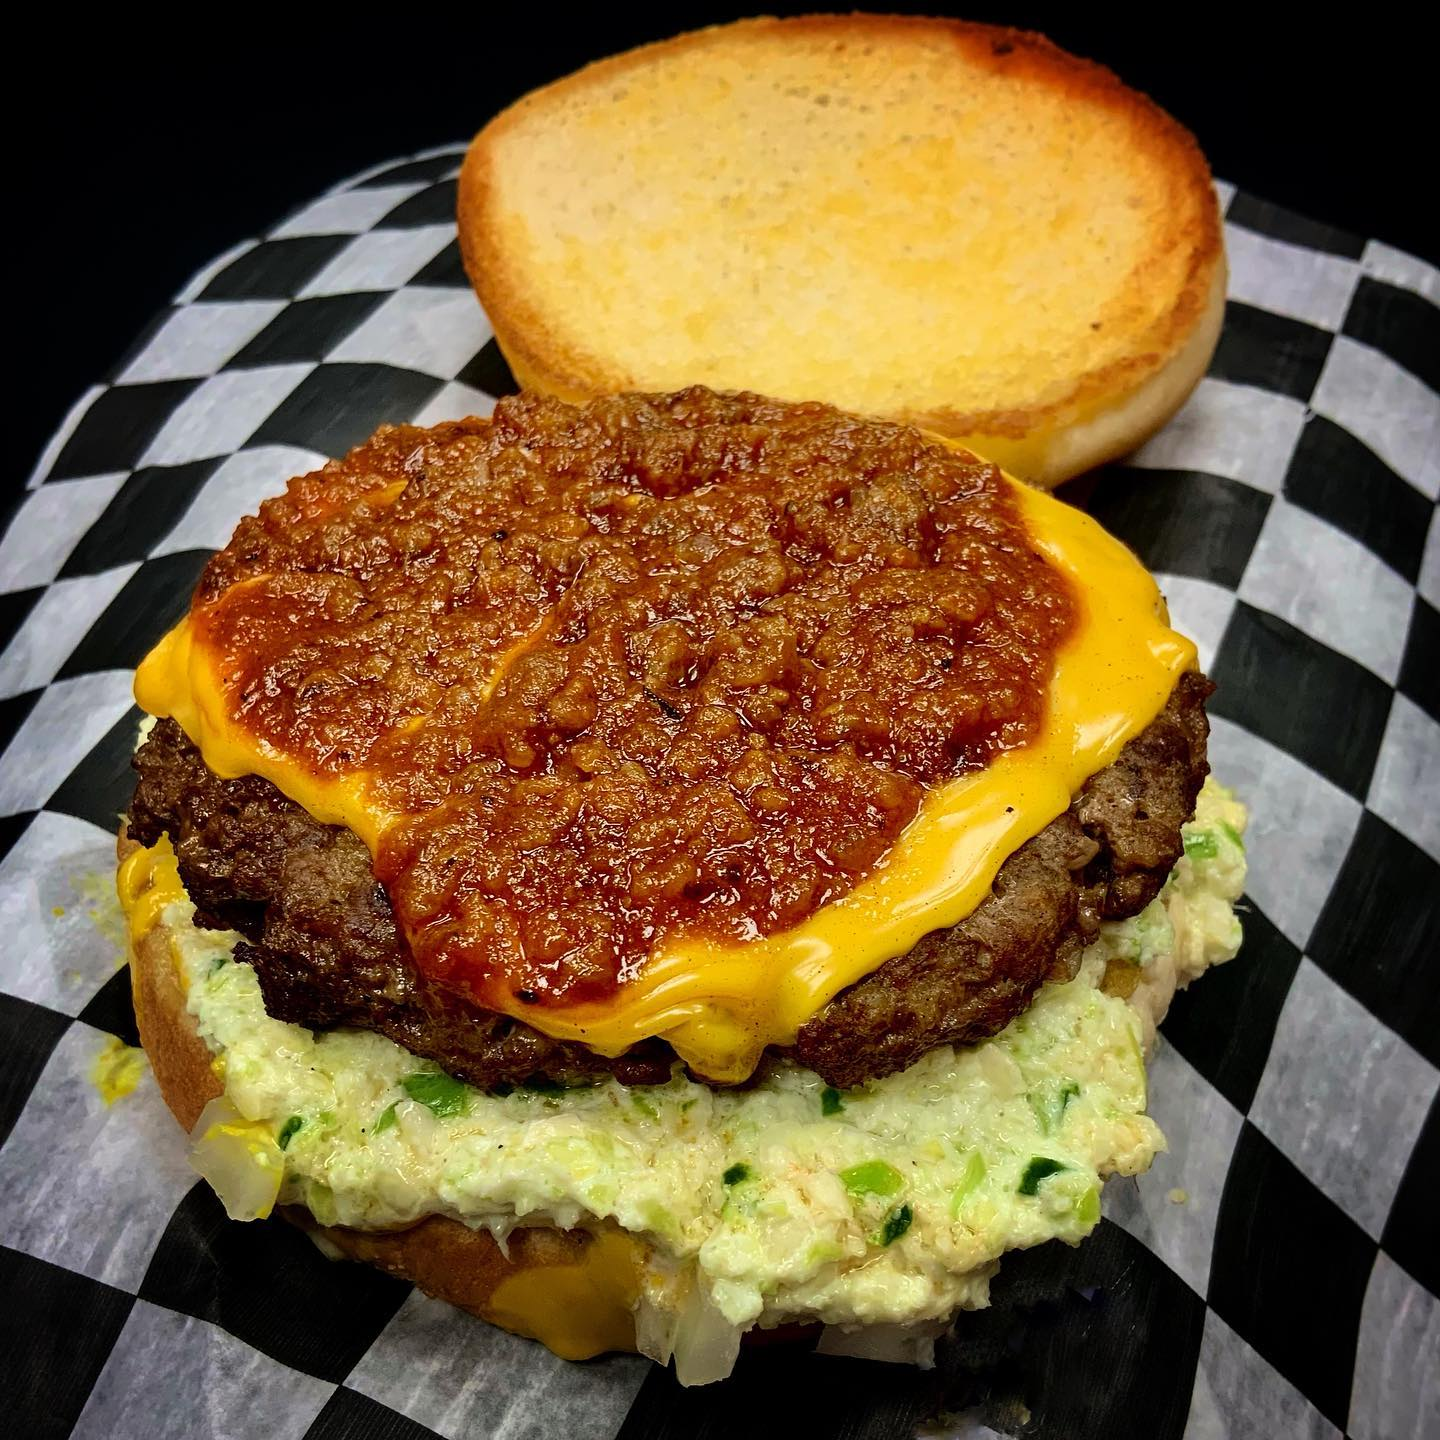 cheeseburger with lettuce topped with chili